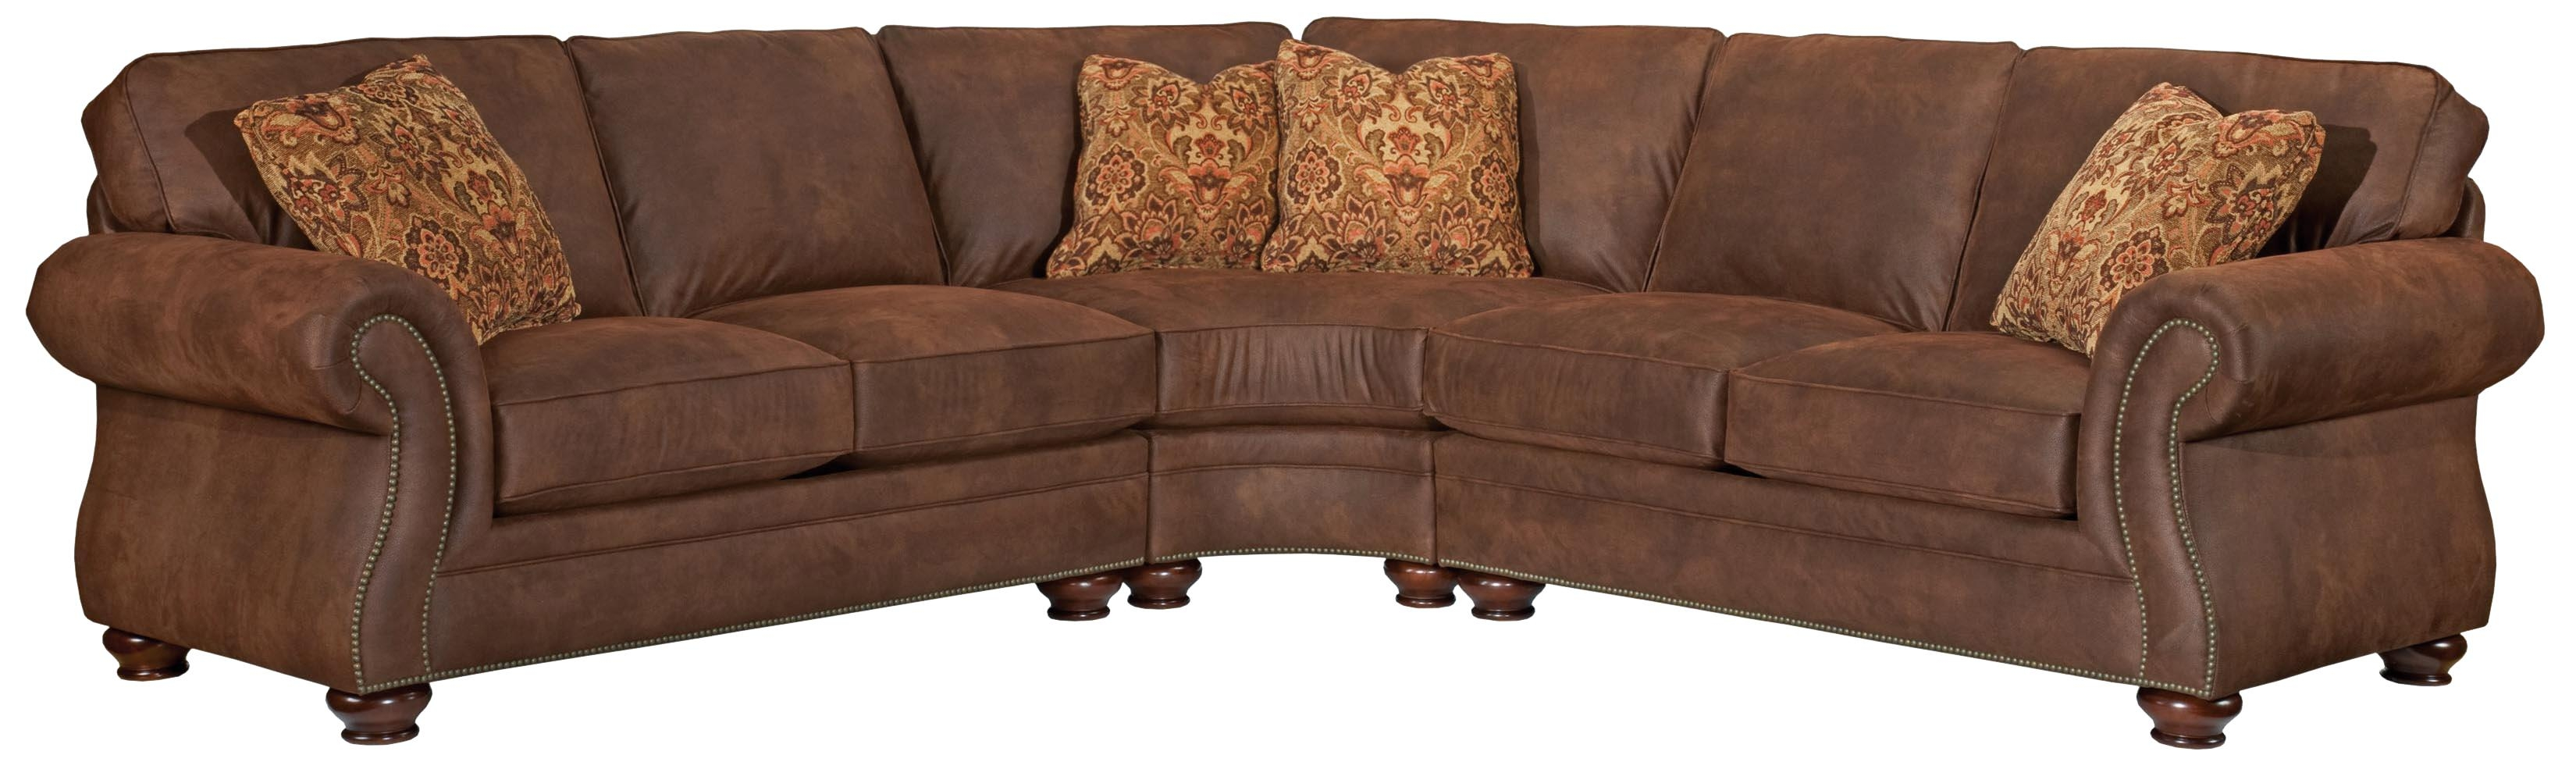 Popular Photo of Broyhill Sectional Sofas